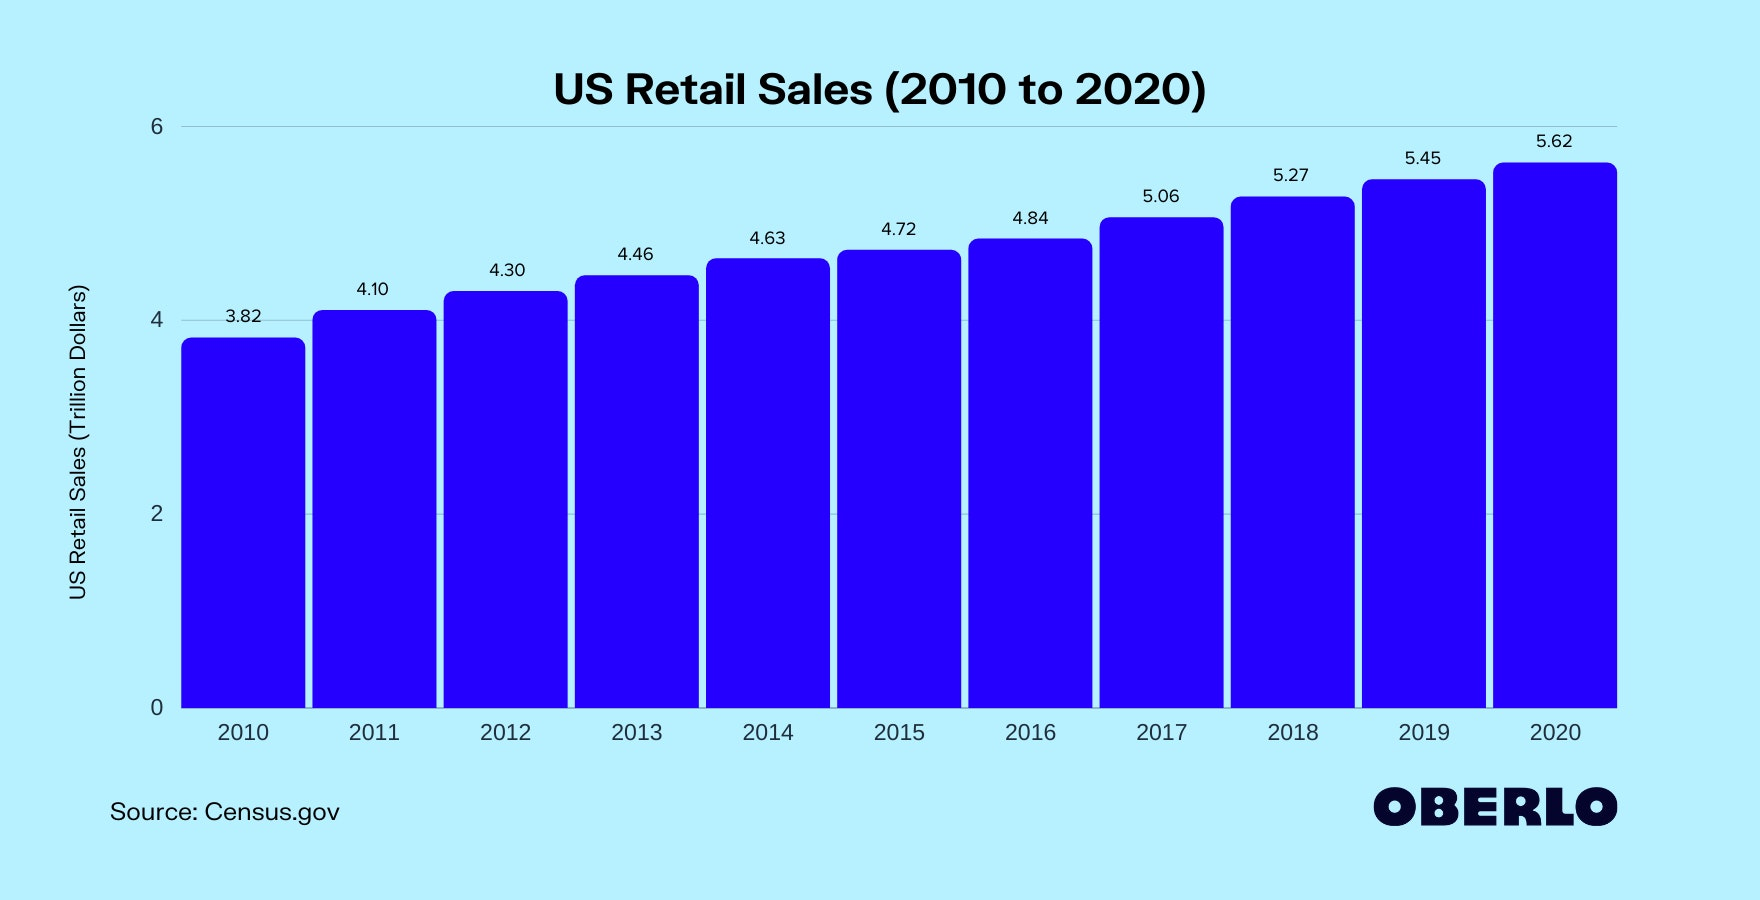 US Retail Sales (2010 to 2020)